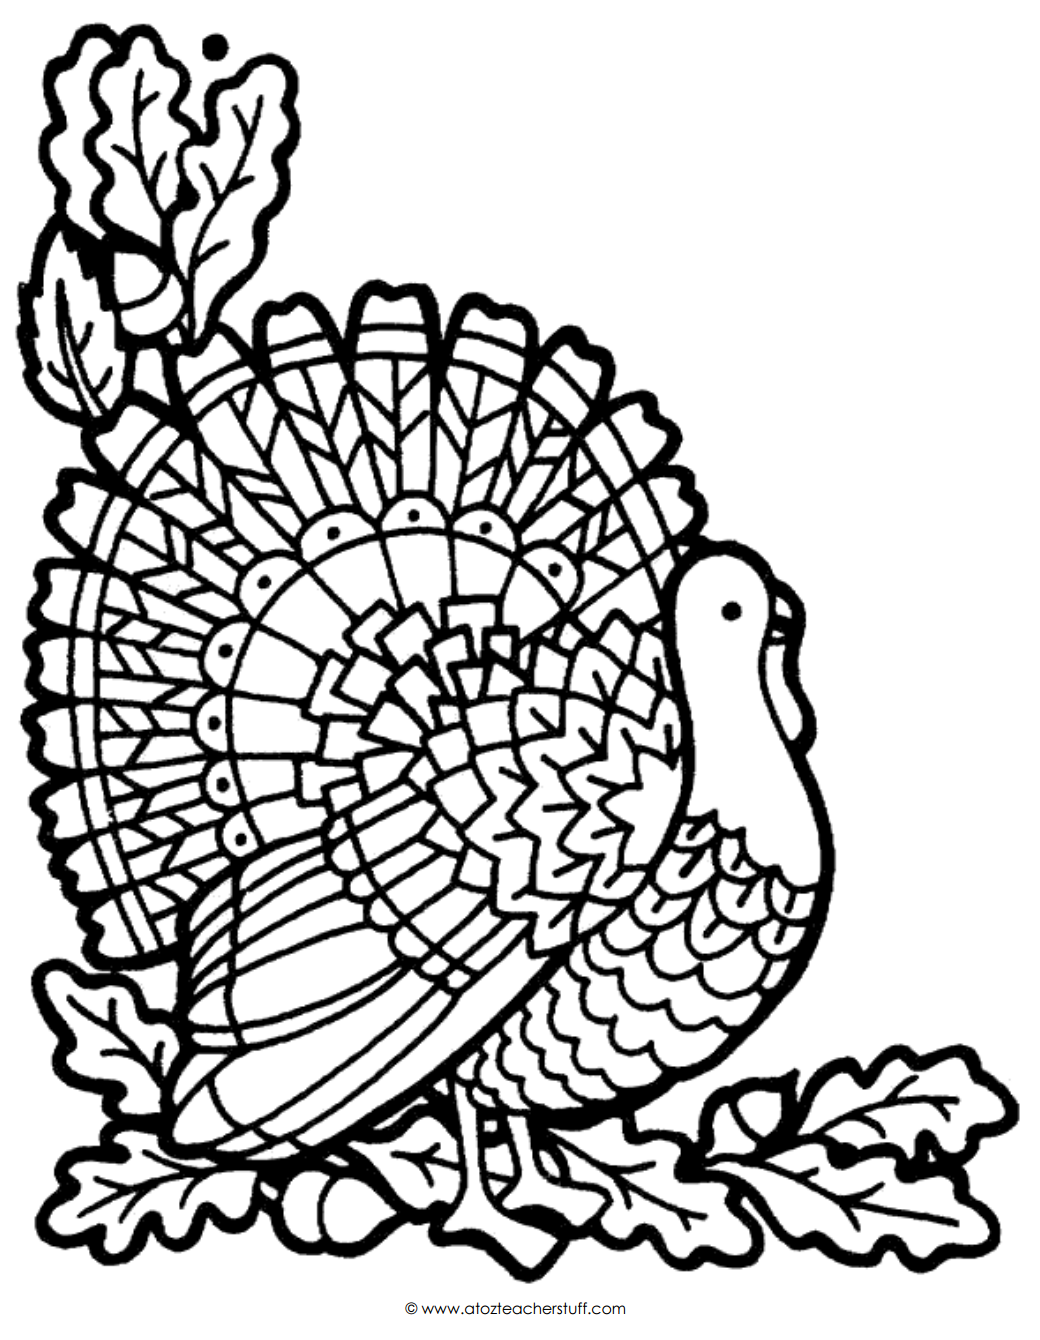 turkey coloring sheet turkey coloring page a to z teacher stuff printable turkey sheet coloring